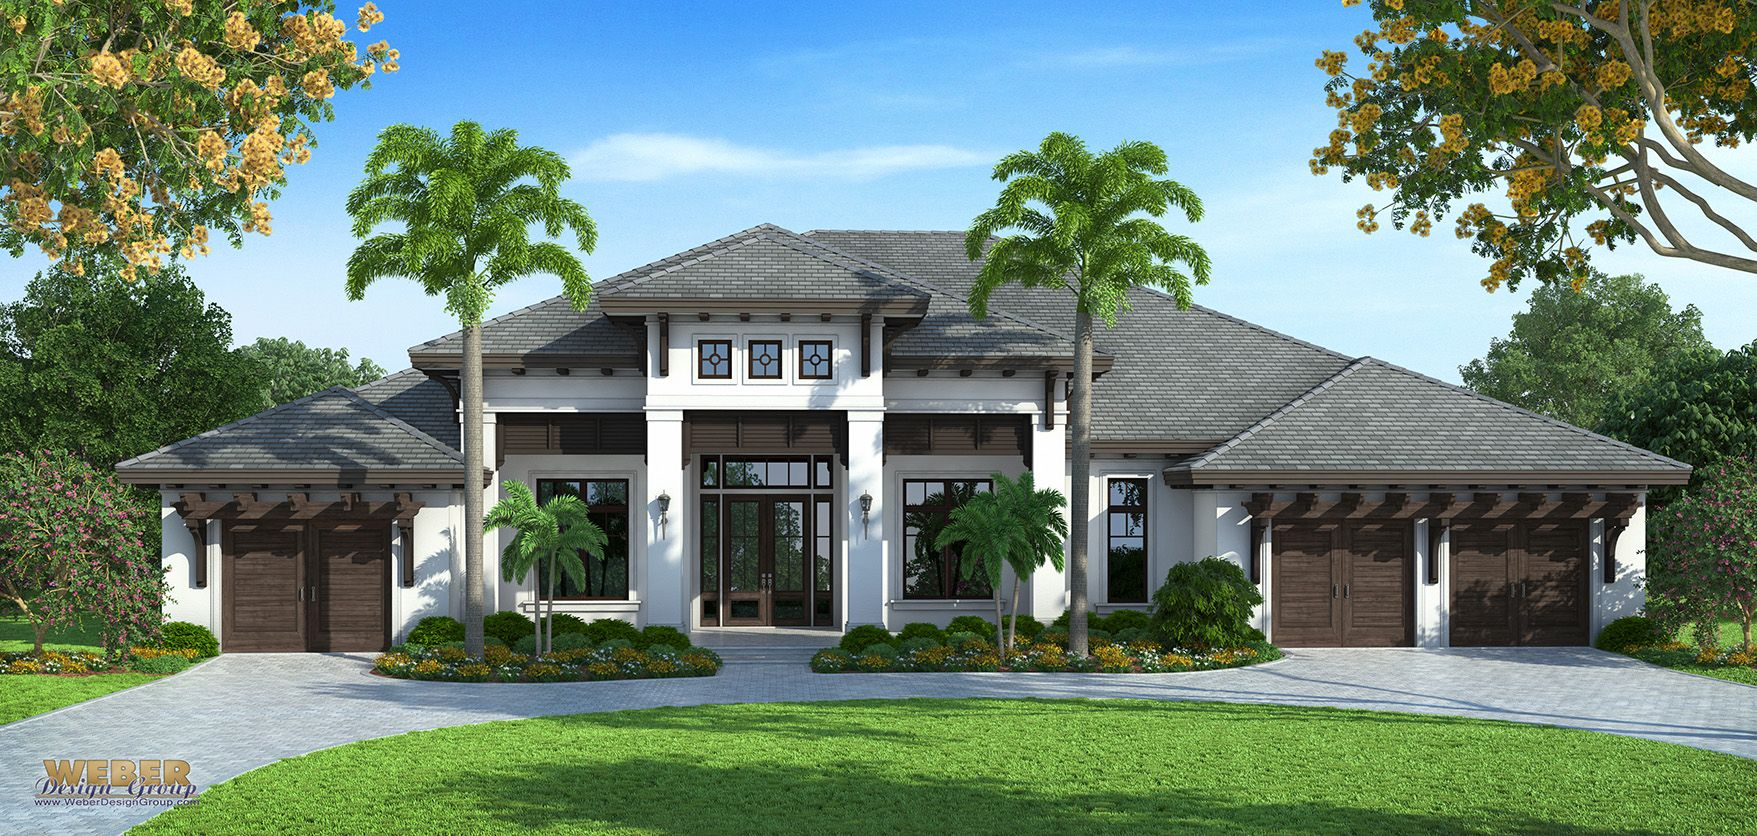 Transitional west indies style house plans by weber design for Weber design